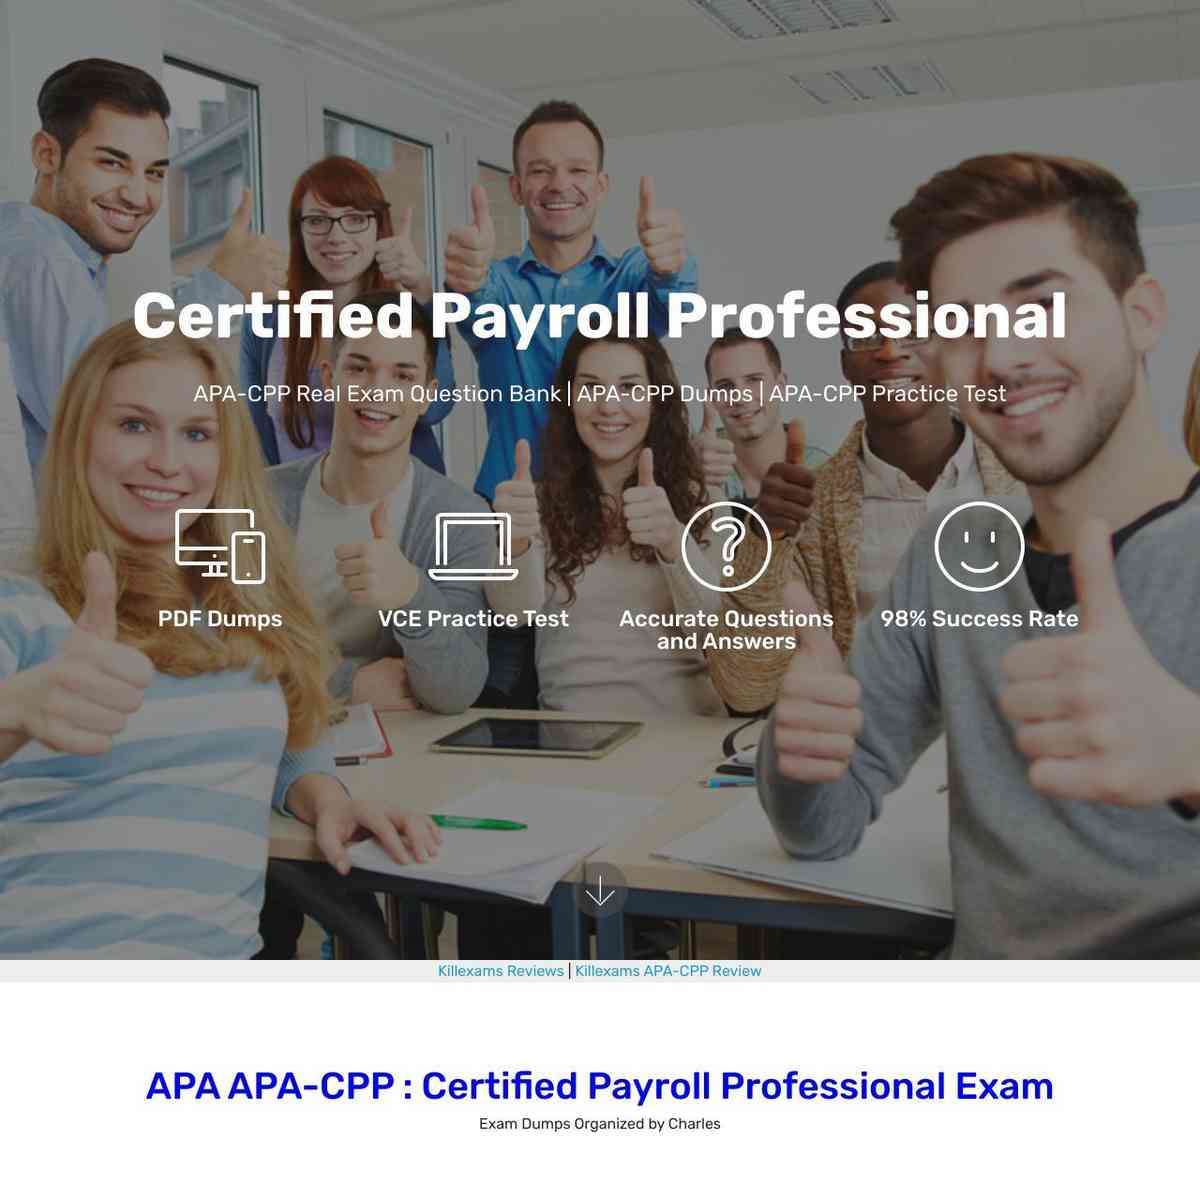 Are you looking for APA-CPP Free Exam PDF that works great in real exam?